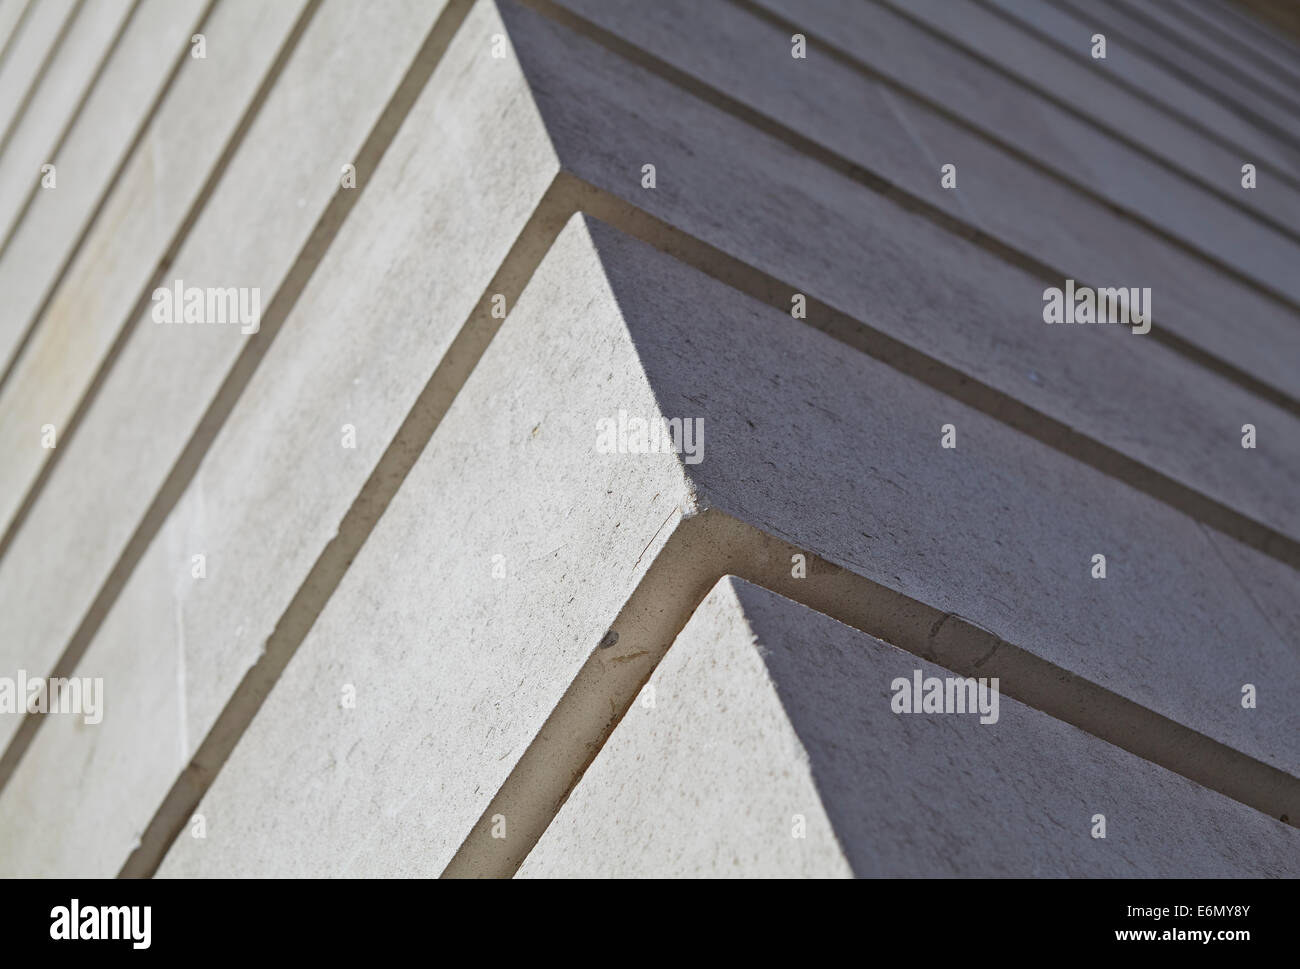 London textures, typical grey stone. - Stock Image